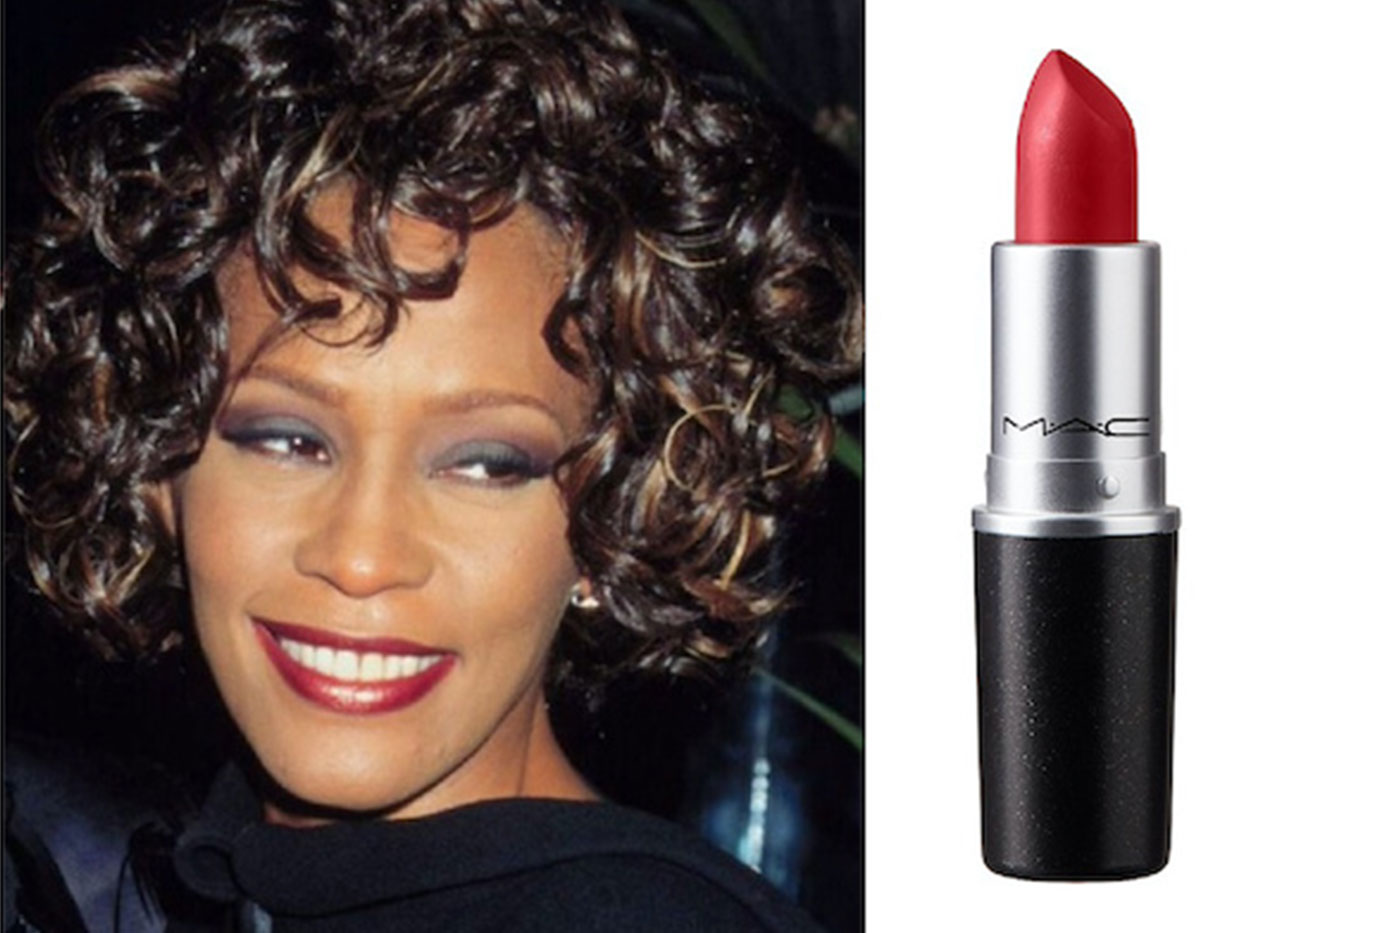 M.A.C. to launch Whitney Houston collection by end 2022